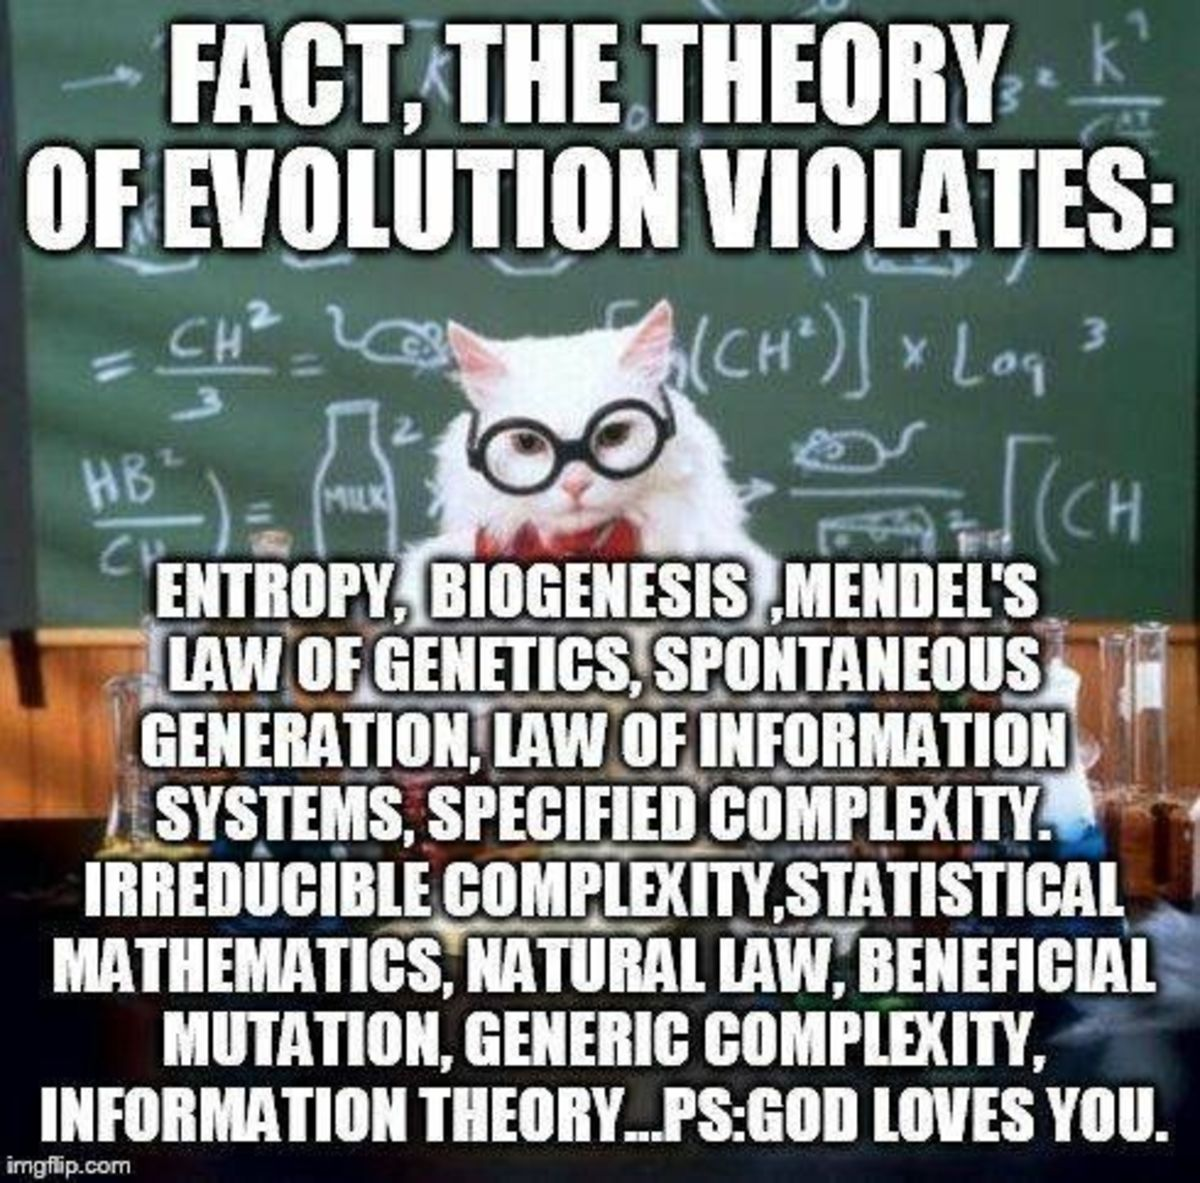 The Theory of Evolution Violates Science